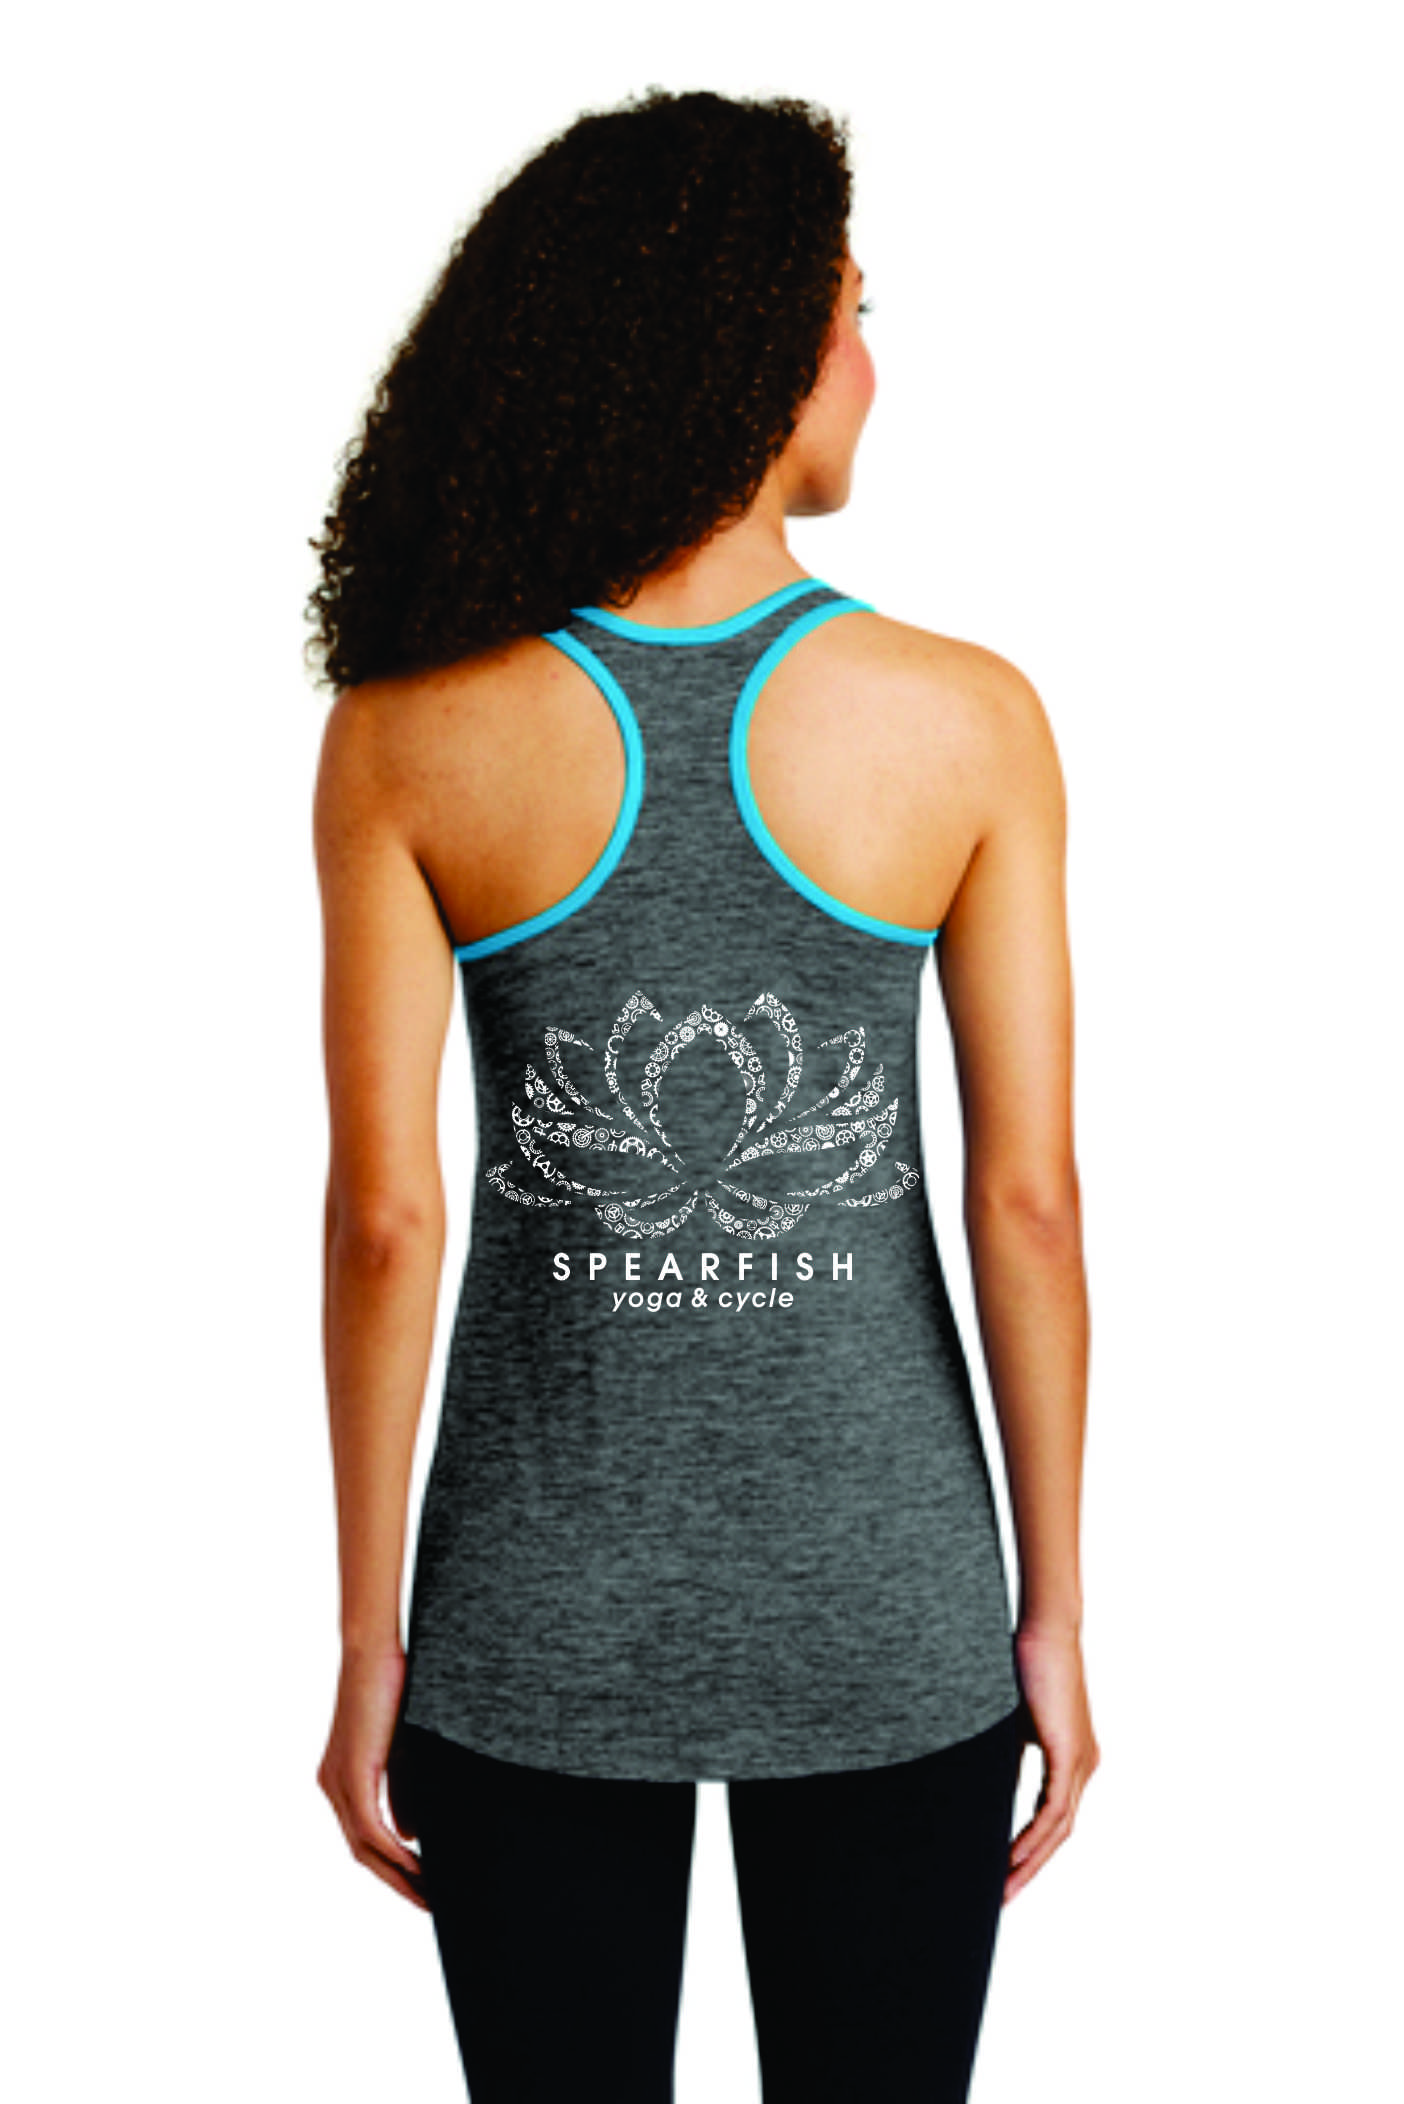 Spearfish Yoga Bike Local Sport Tek Ladies Posicharge Electric Heather Racerback Tank Dilly Prints Llc Sales for yoga clothes have increased 45 percent year over year. alpine impressions and fast break